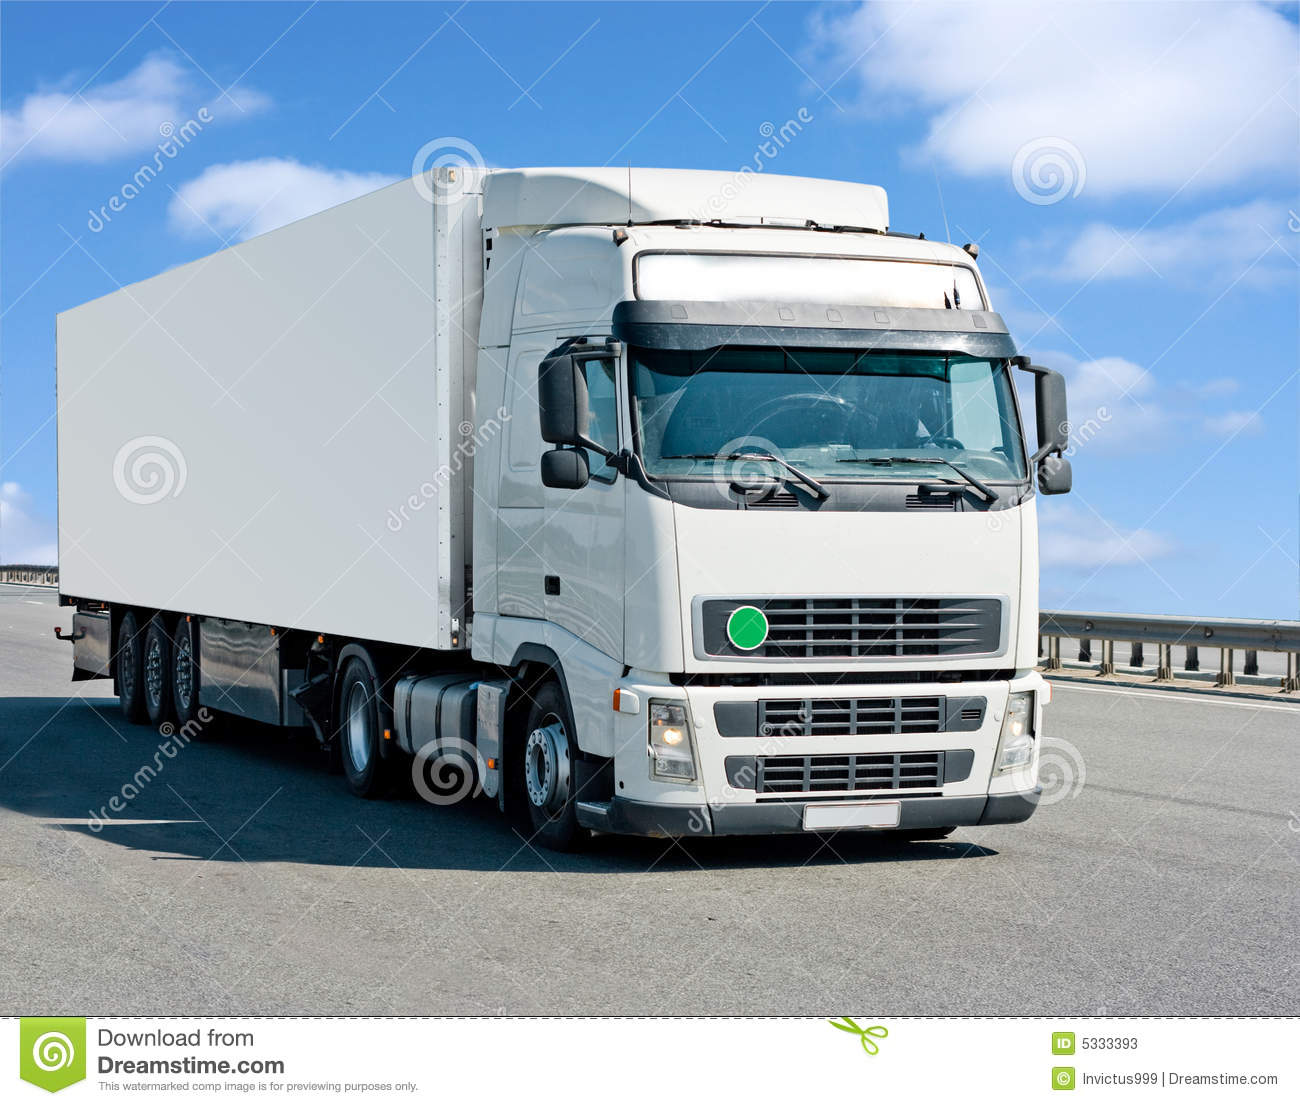 Blank Container Truck Stock Photos - Image: 5333393